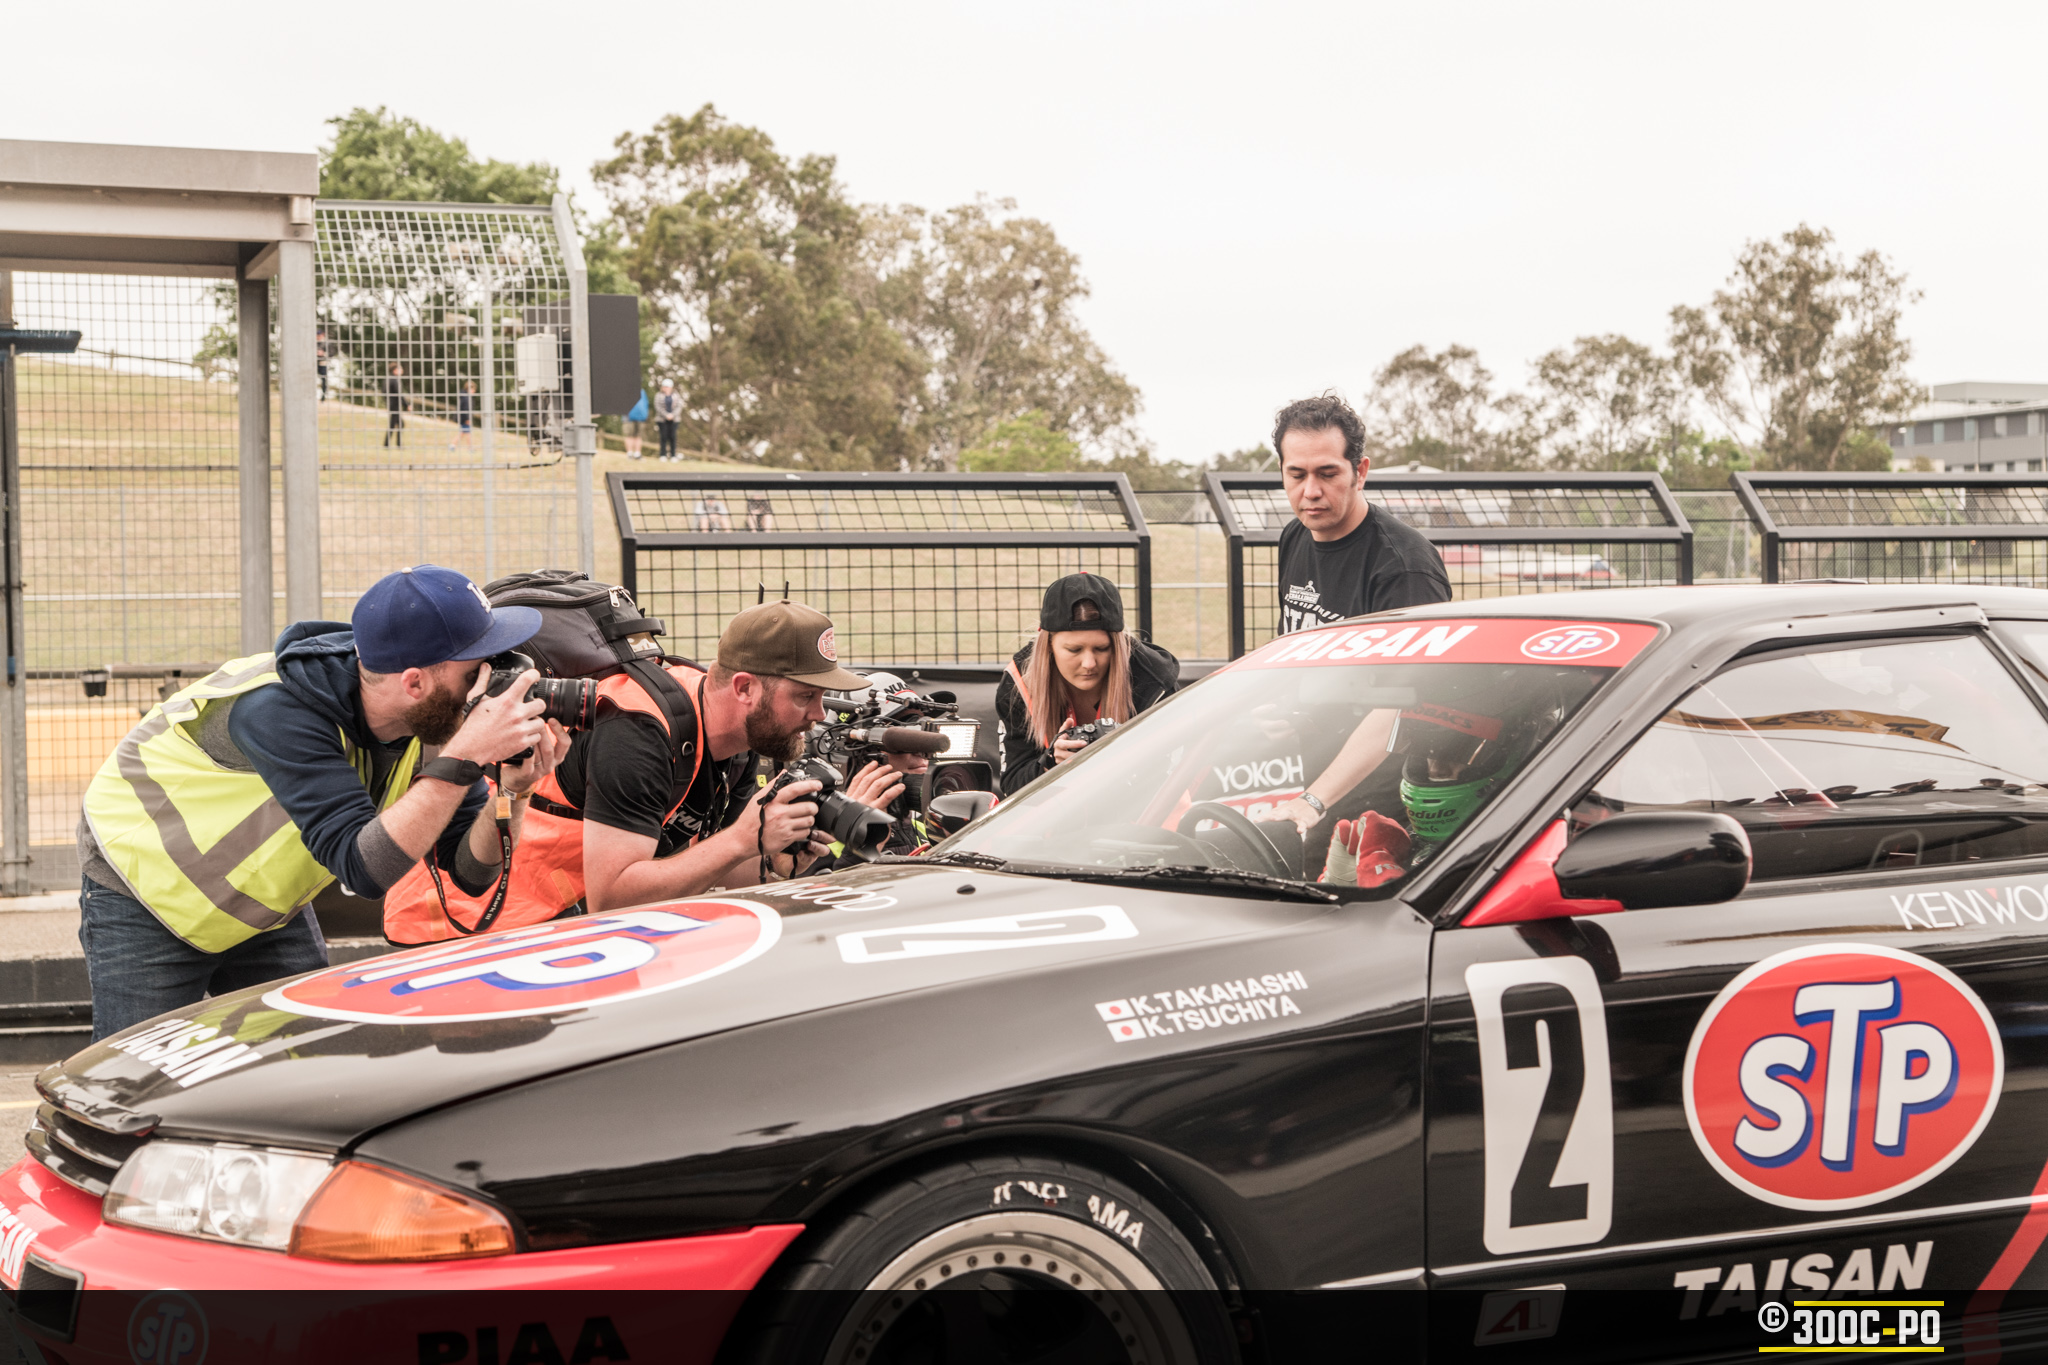 2017-10-14 - WTAC 2017 Day 02 148